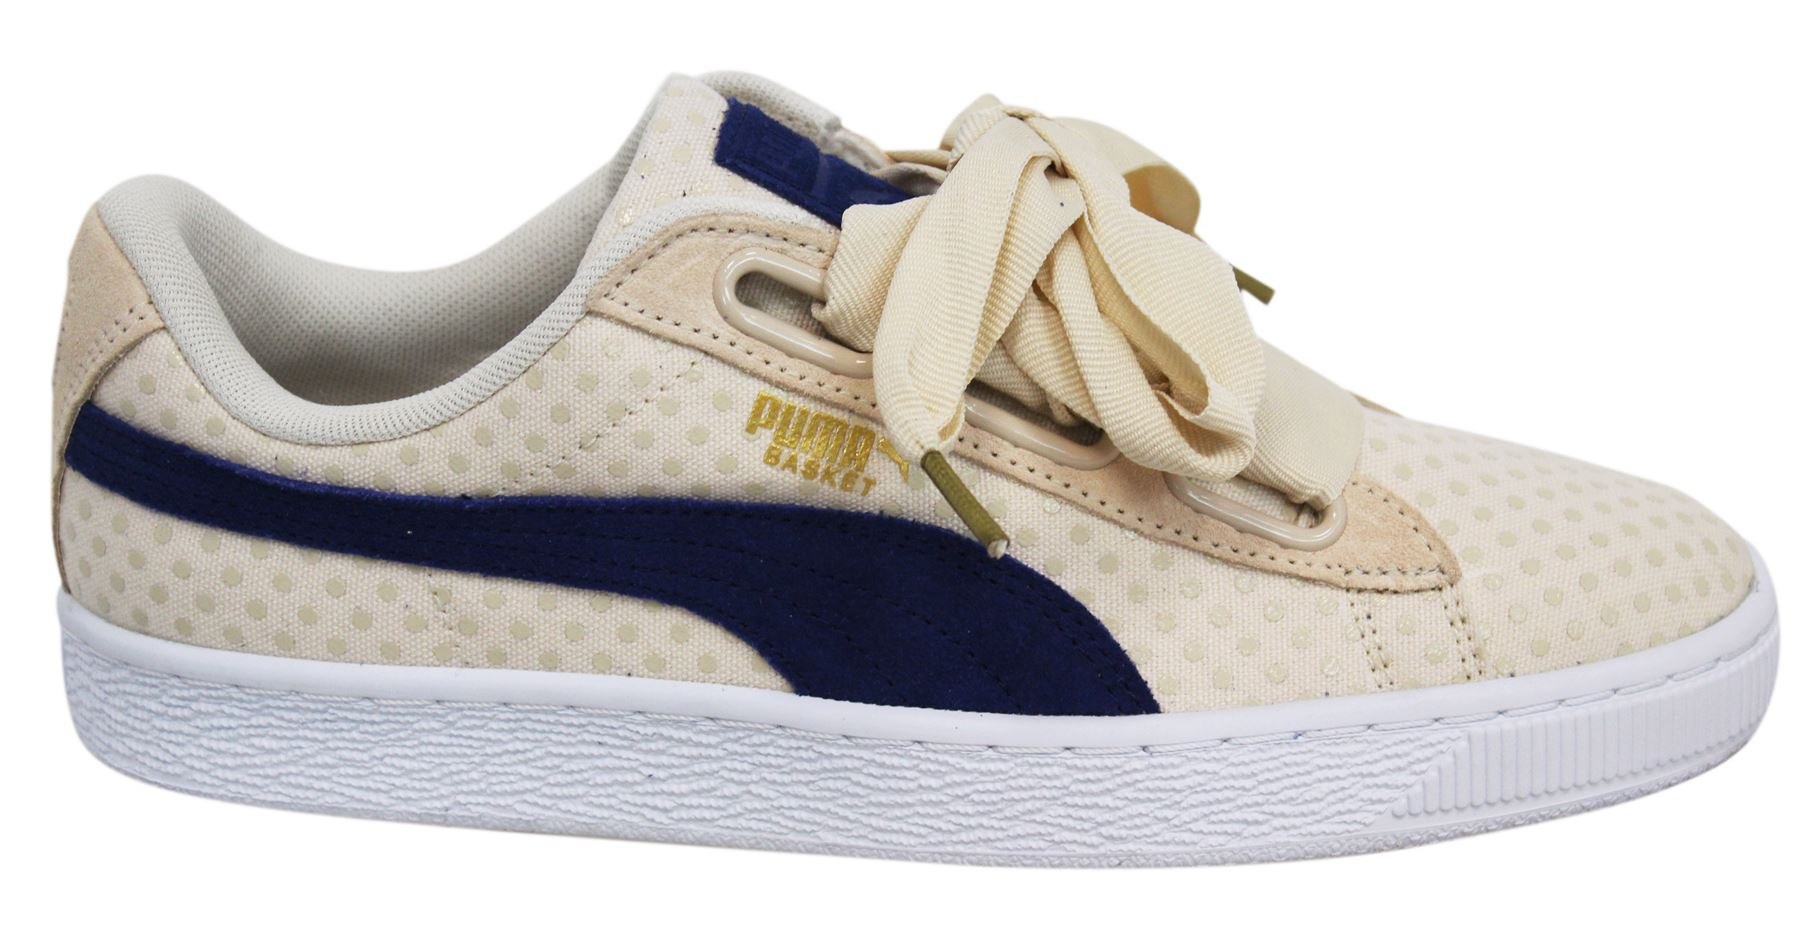 half off 214b8 9f9f4 Details about Puma Basket Heart Denim Lace Up Beige Womens Trainers 363371  03 M8